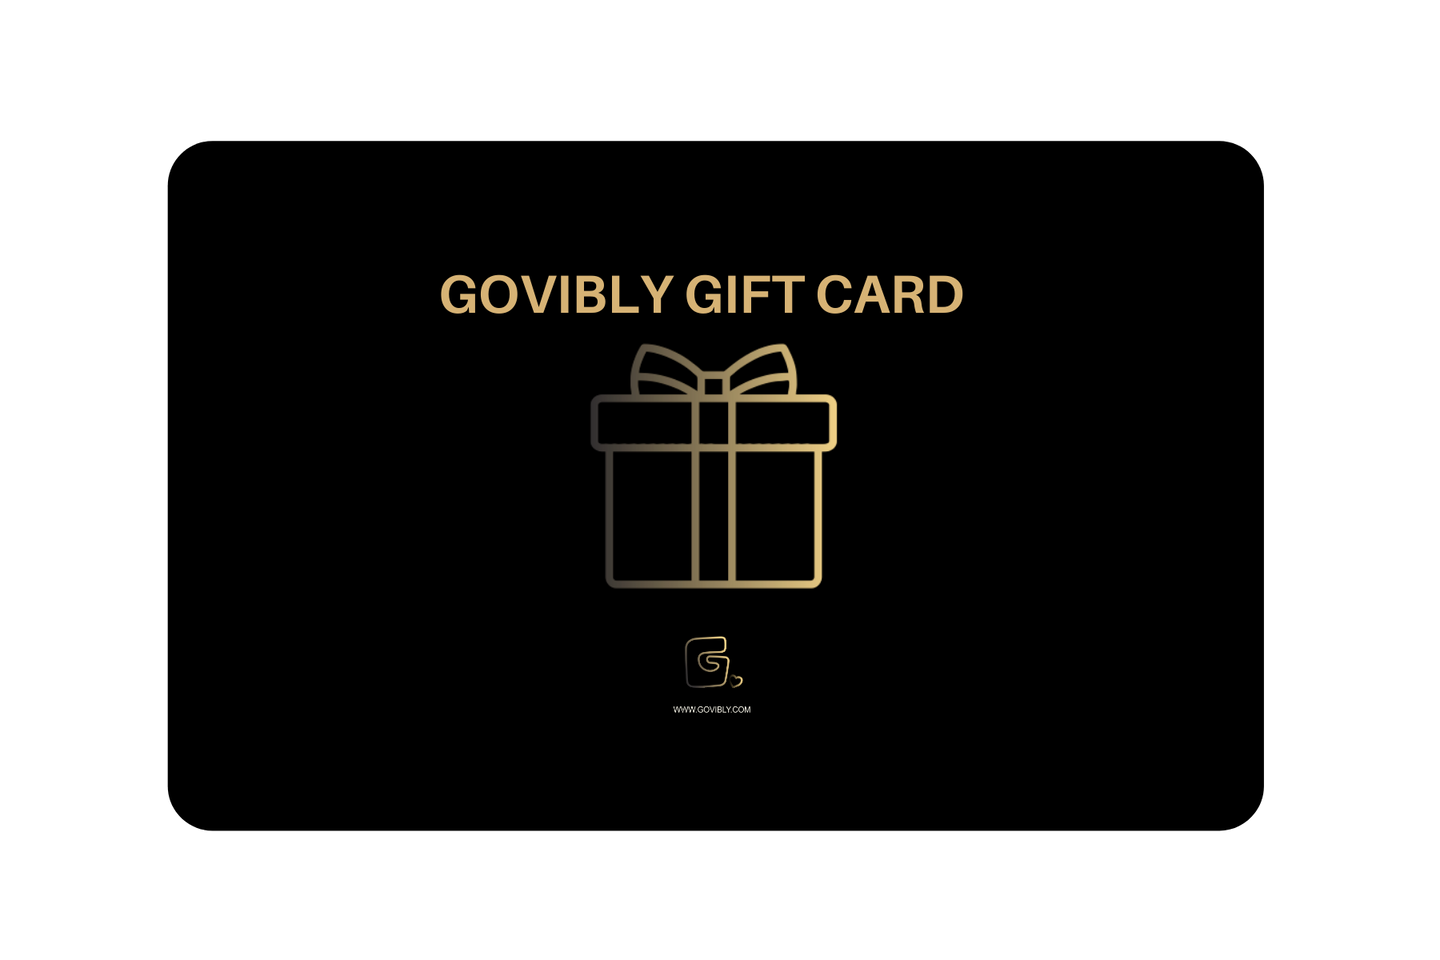 Govibly Gift Card